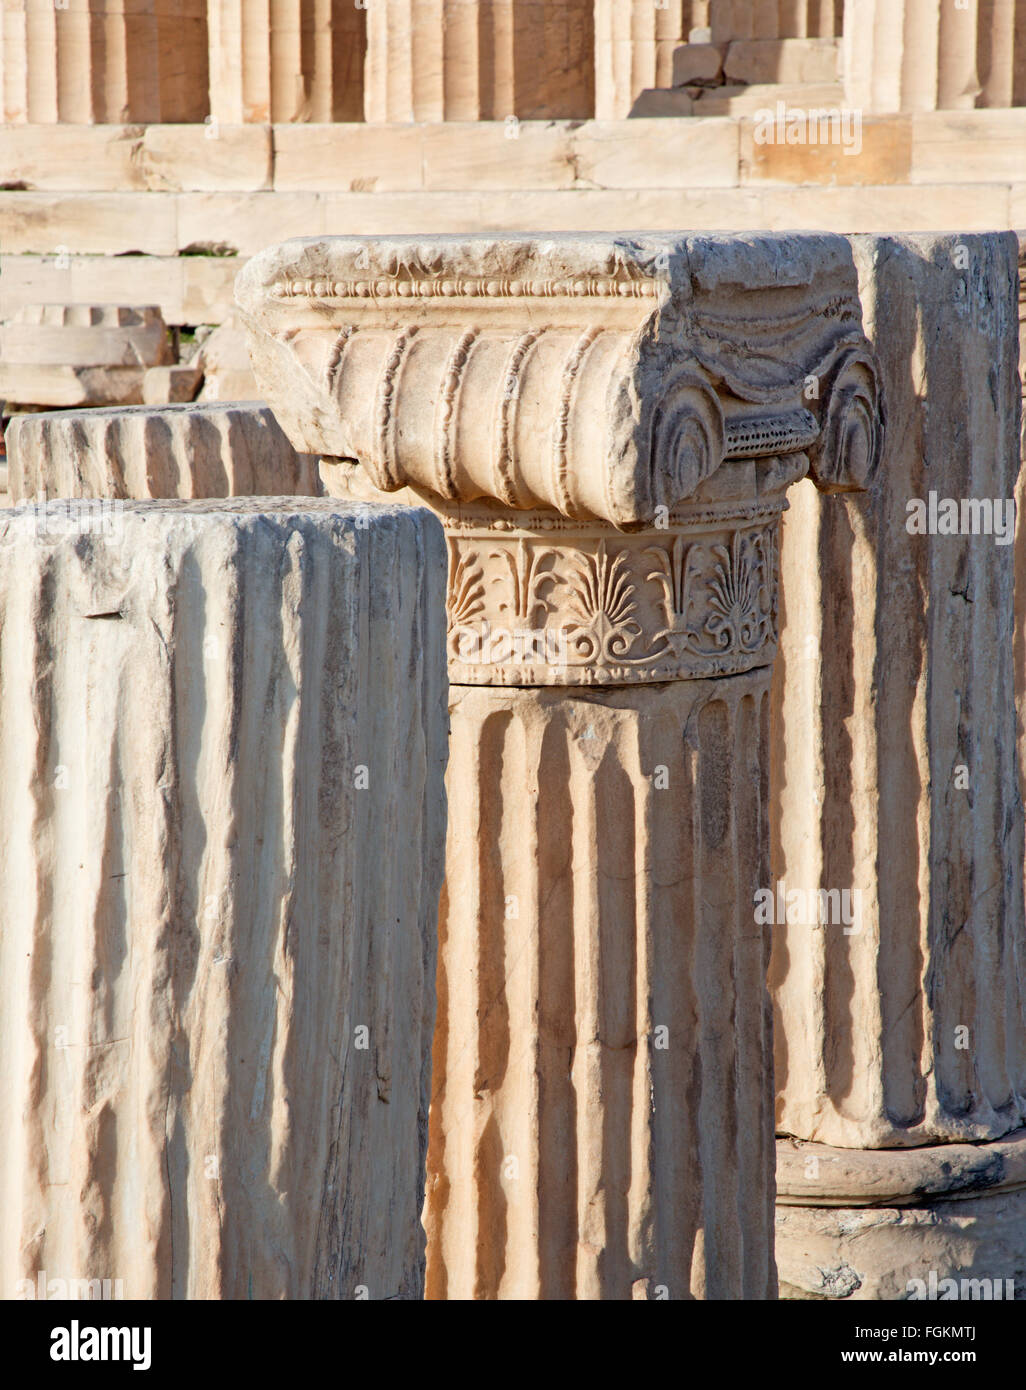 Athens - The detail of Ionic capital on the Acropolis. - Stock Image